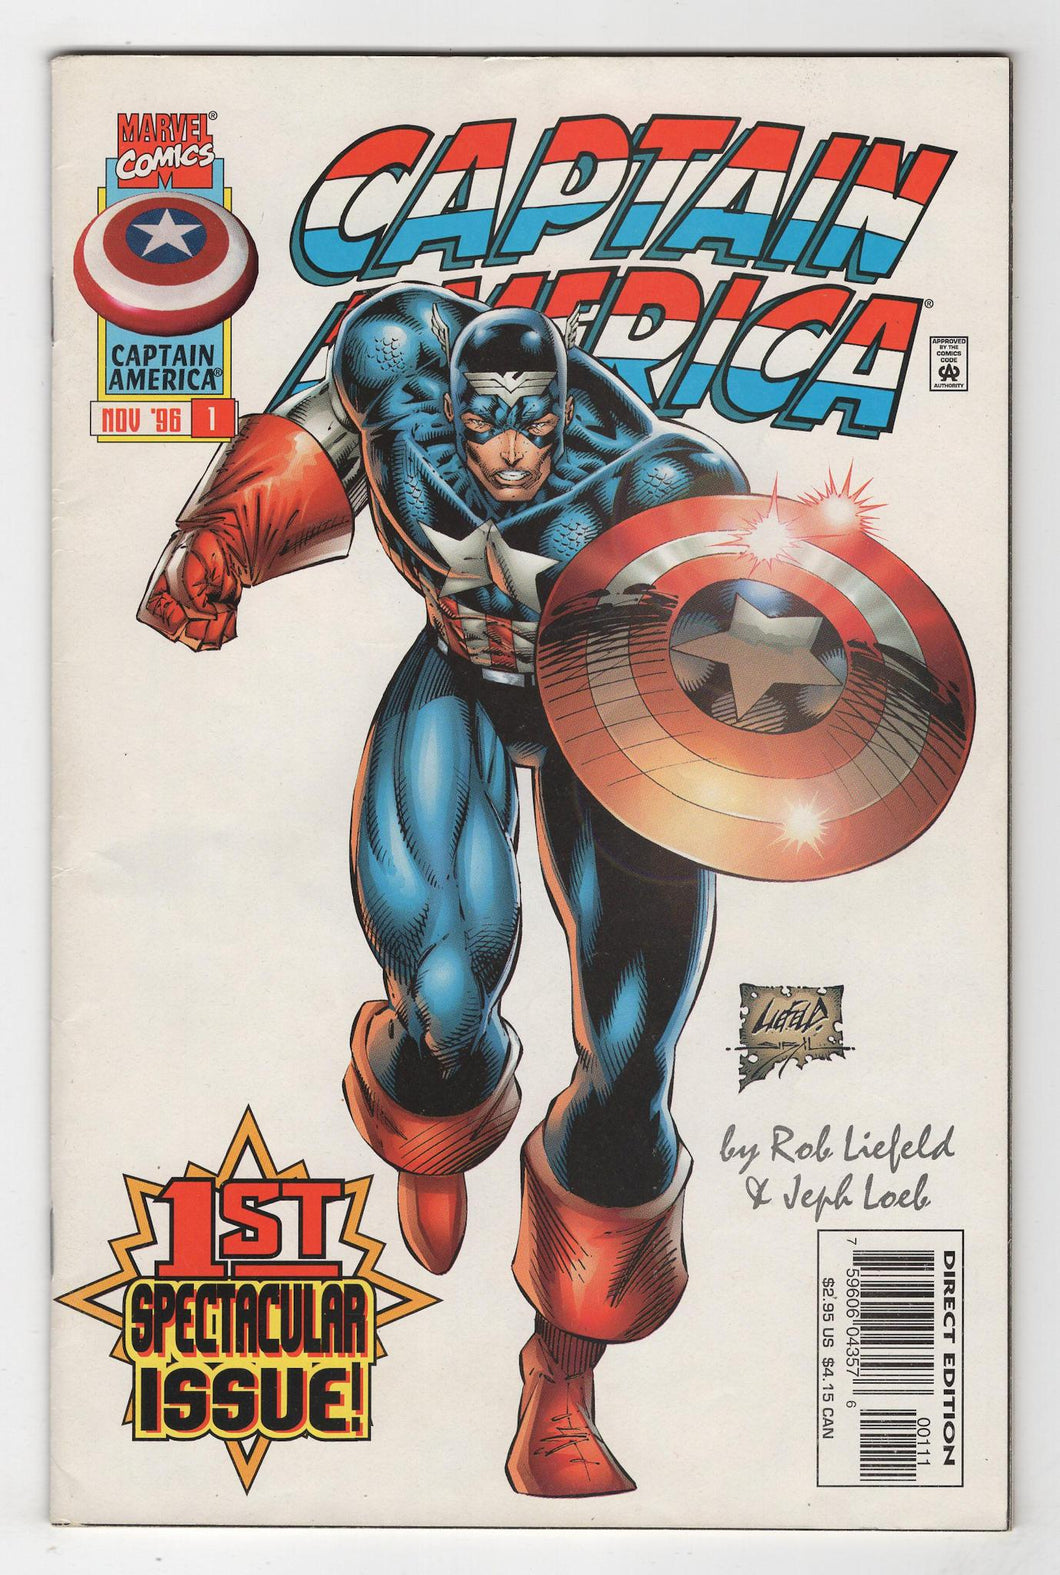 Captain America #1 Cover Front